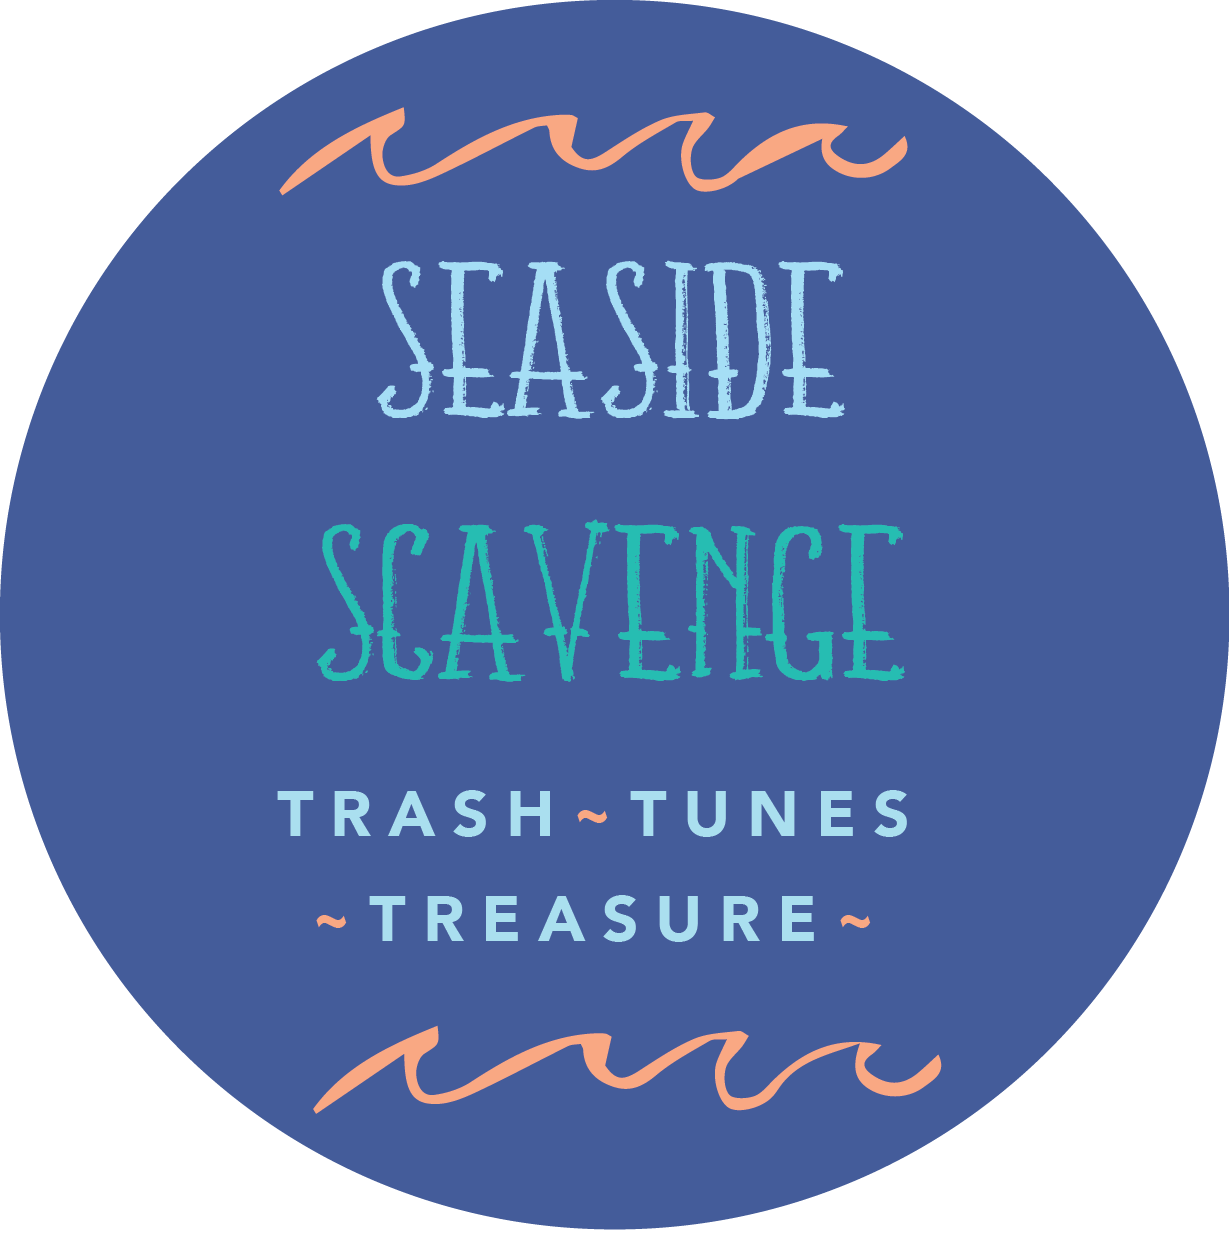 Seaside Scavenge